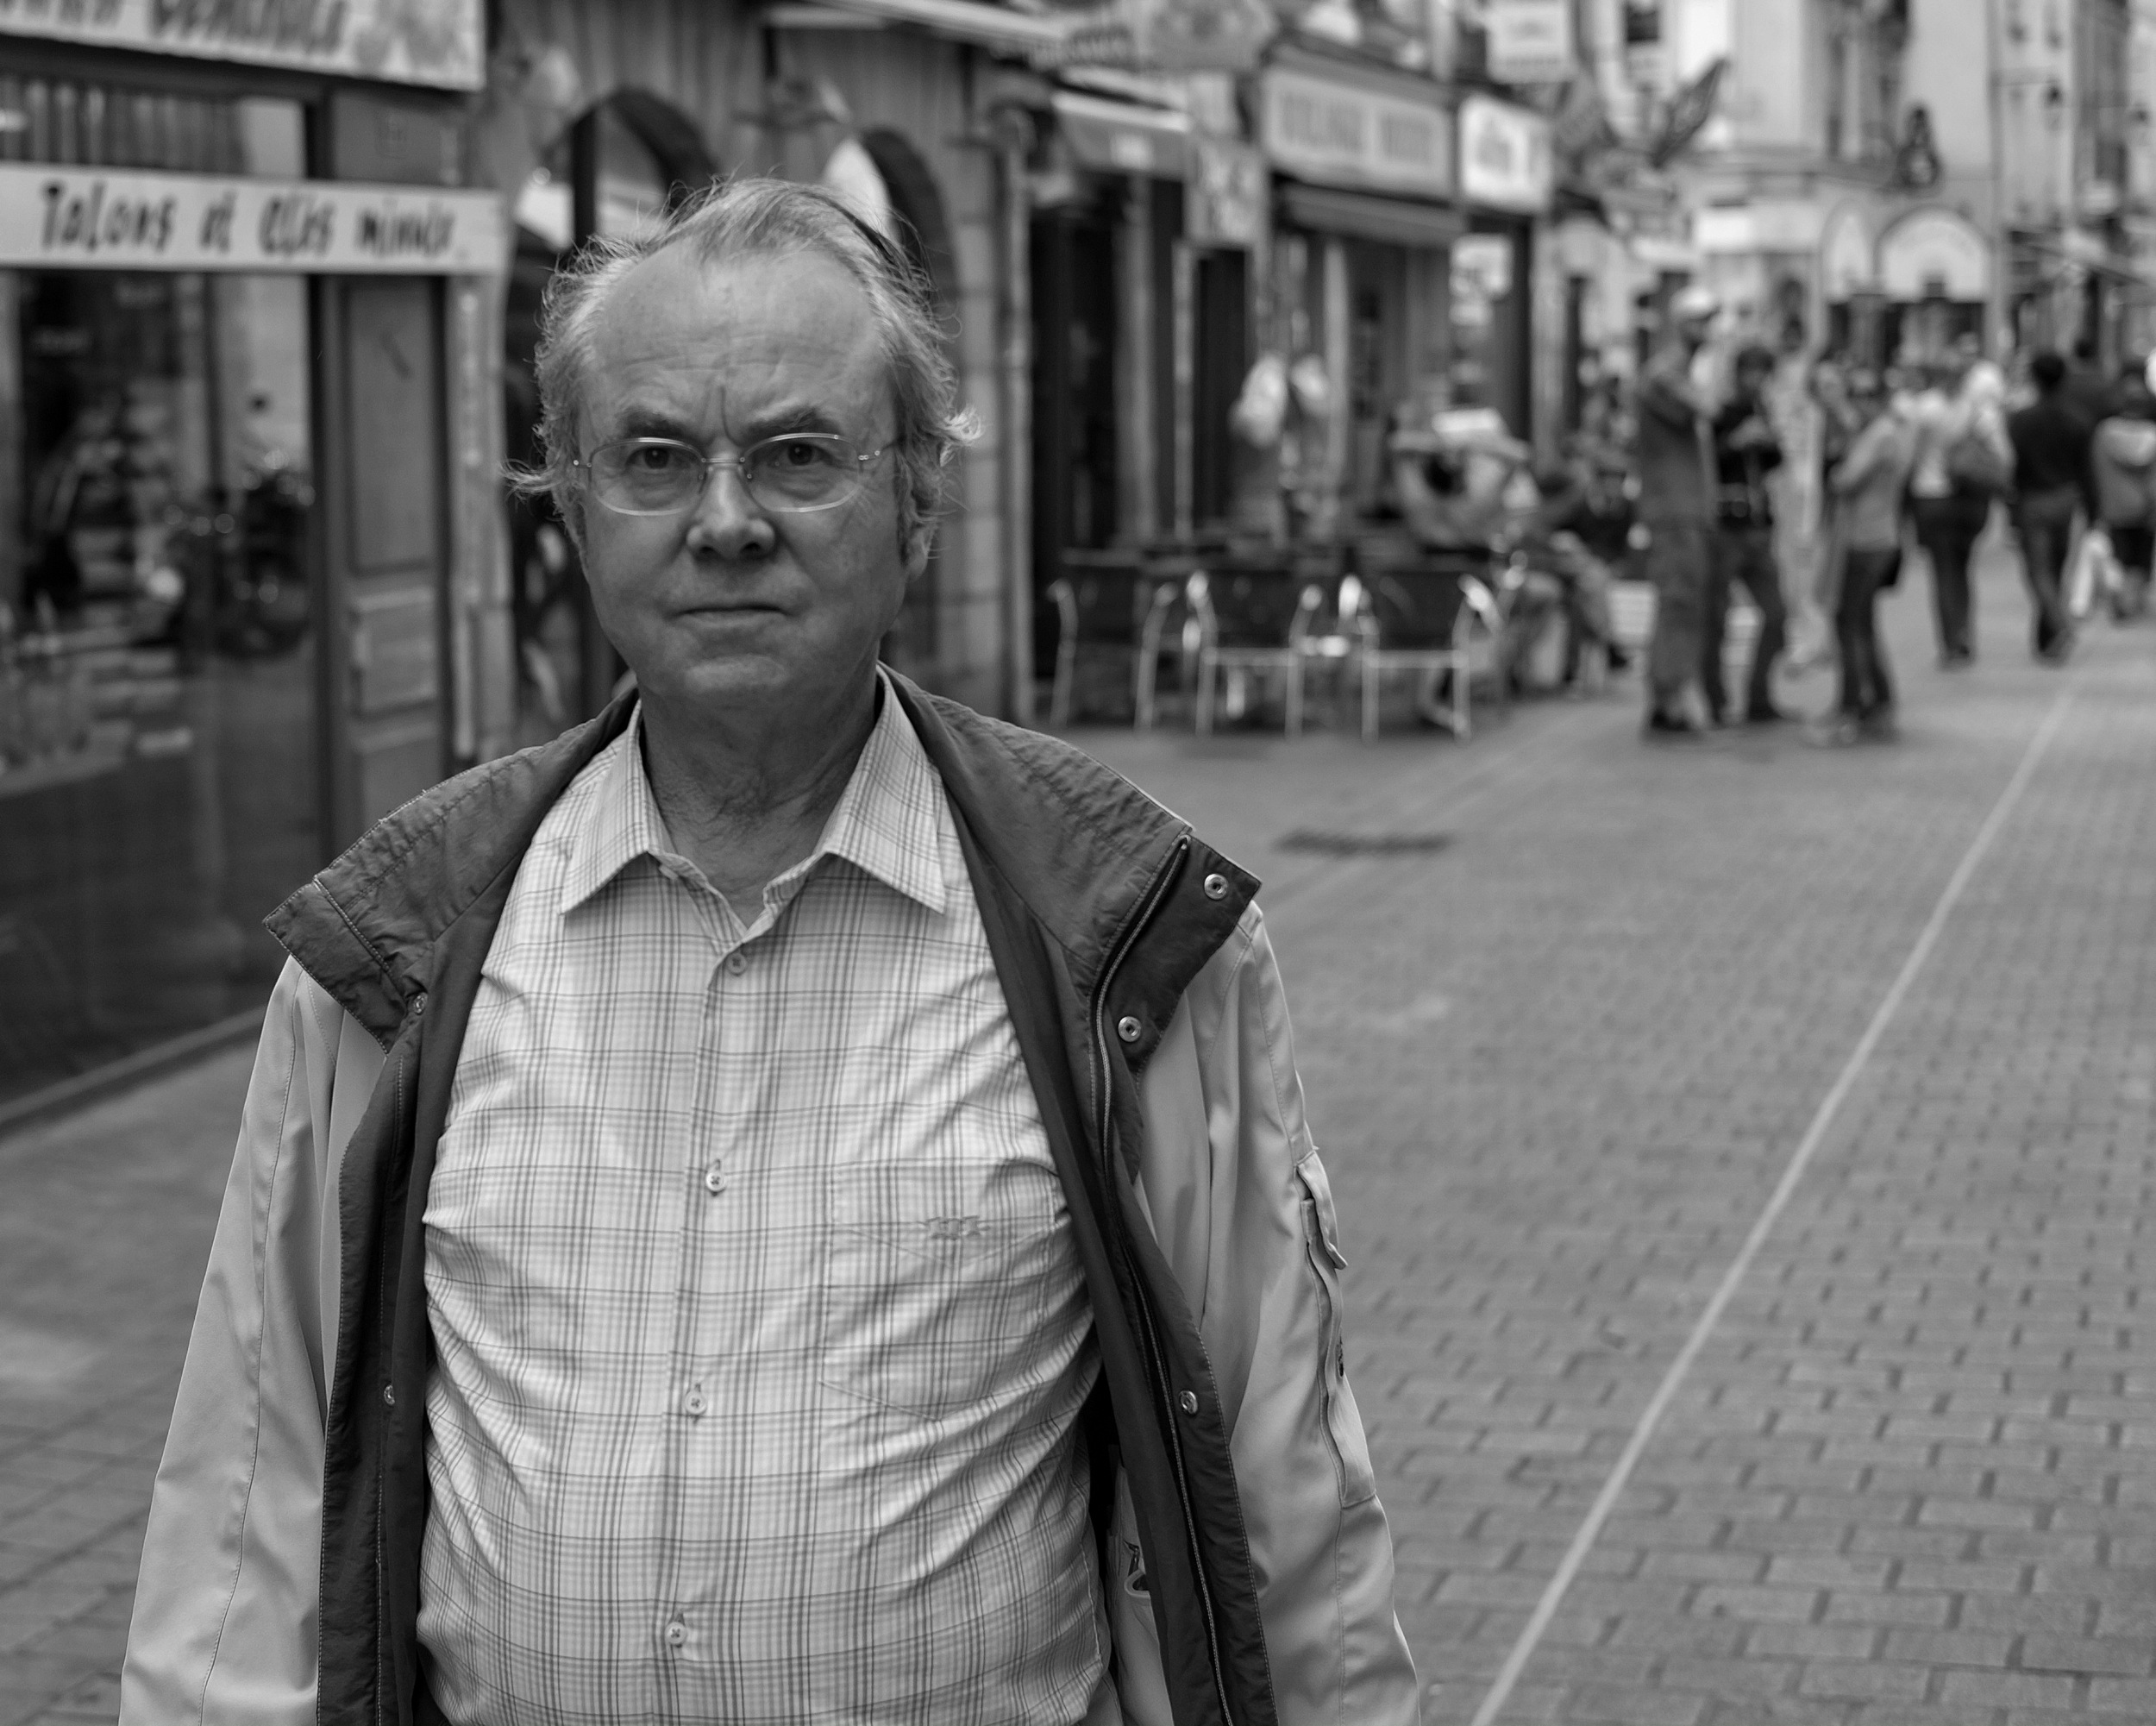 Man walking in Nantes - Fuji X-Pro1